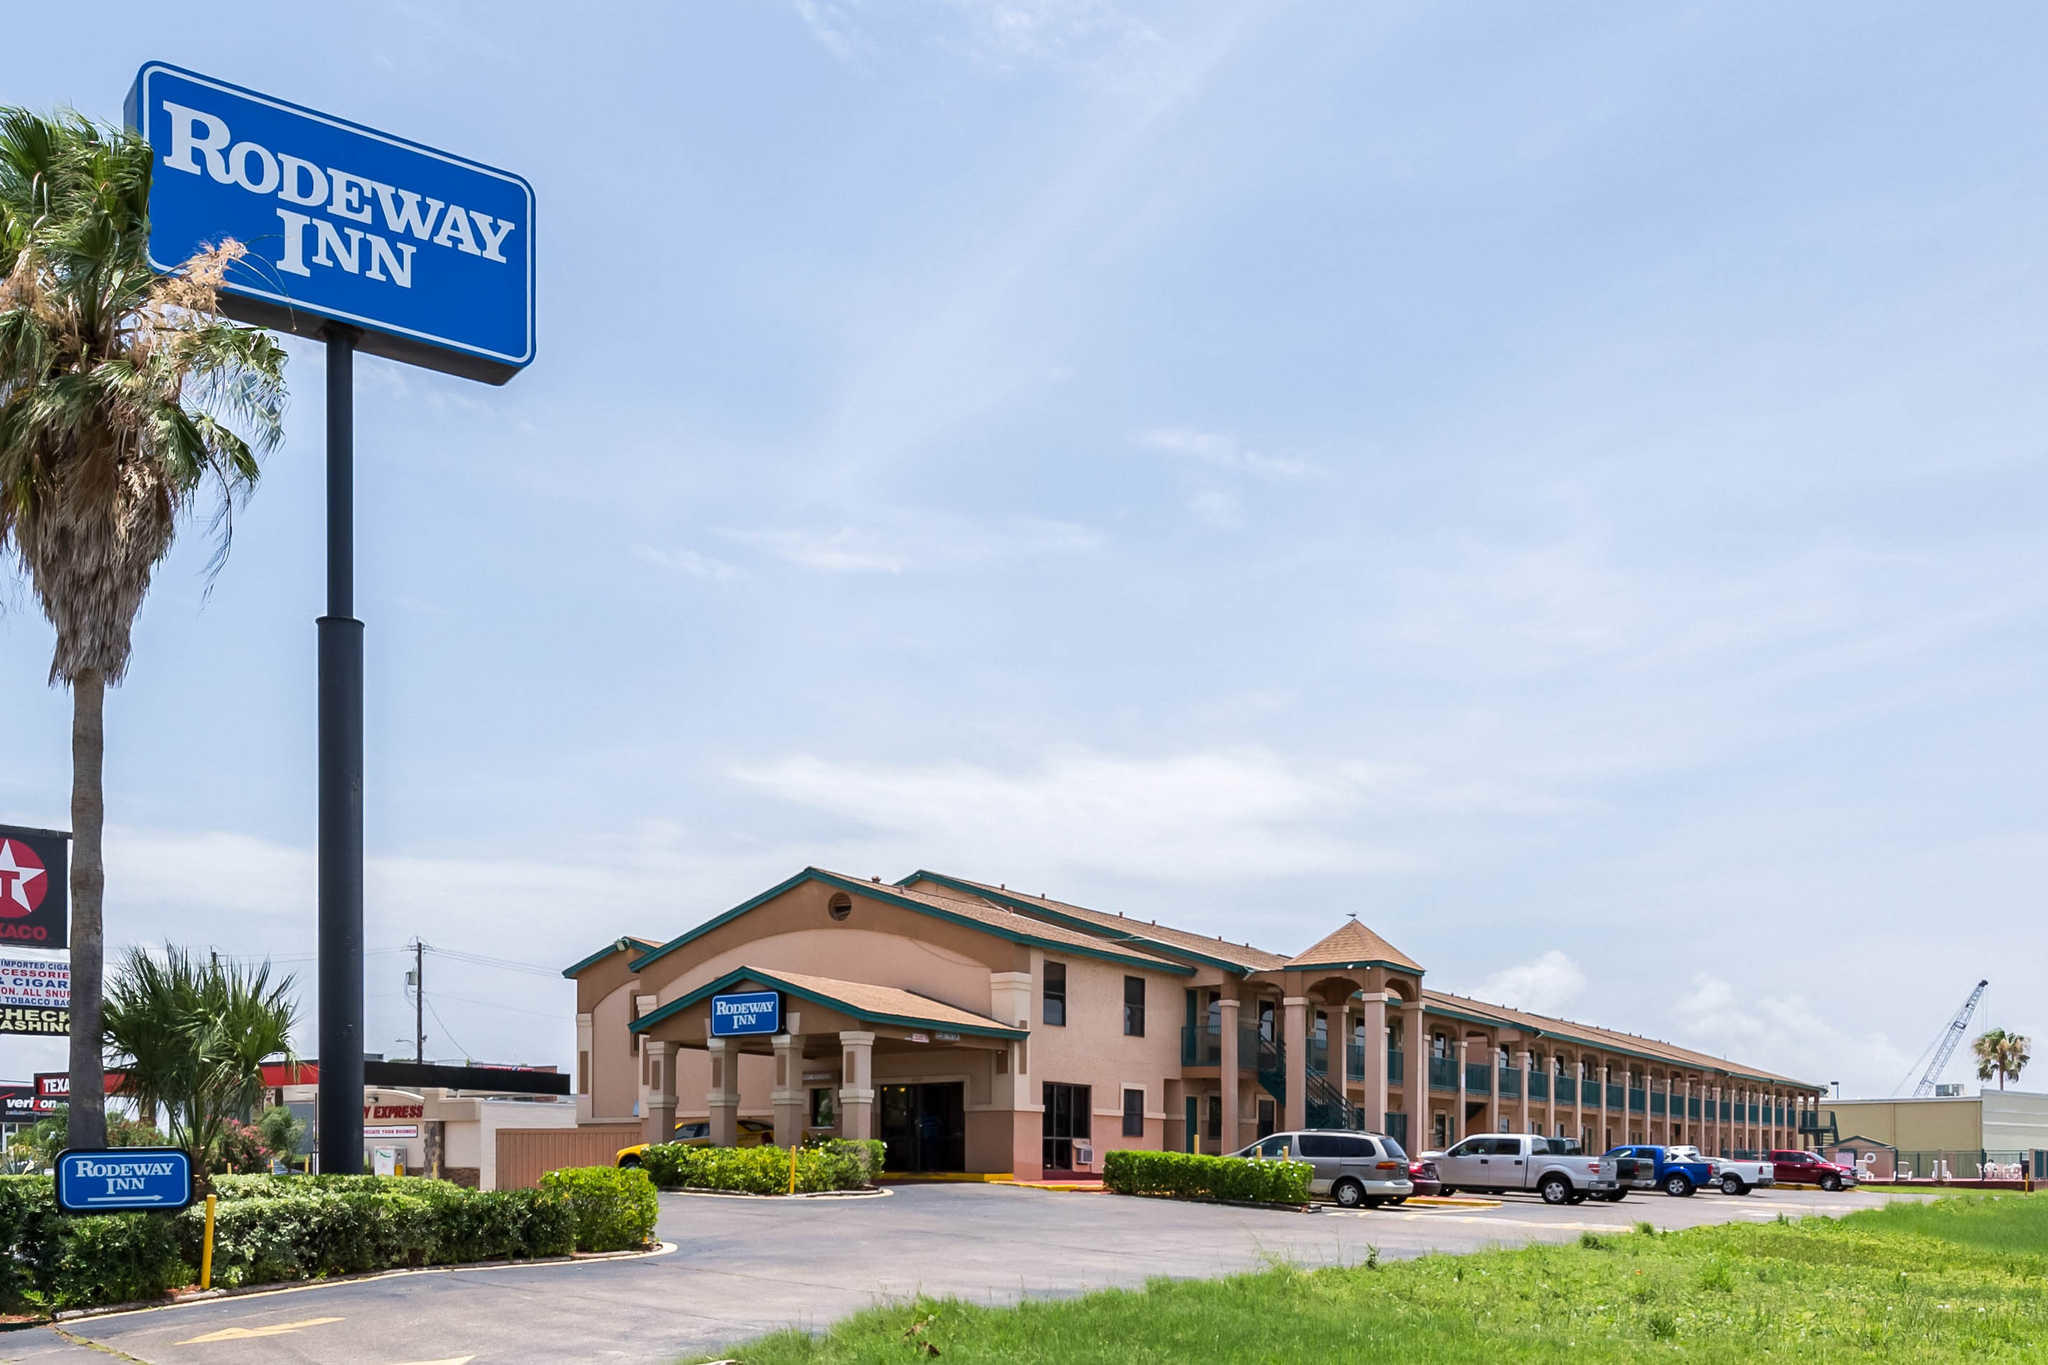 As a brand of Choice Hotels International, Rodeway Inn is a part of one of the top lodging franchises in the world. With close to half a million rooms under its umbrella, this company knows hospitality.